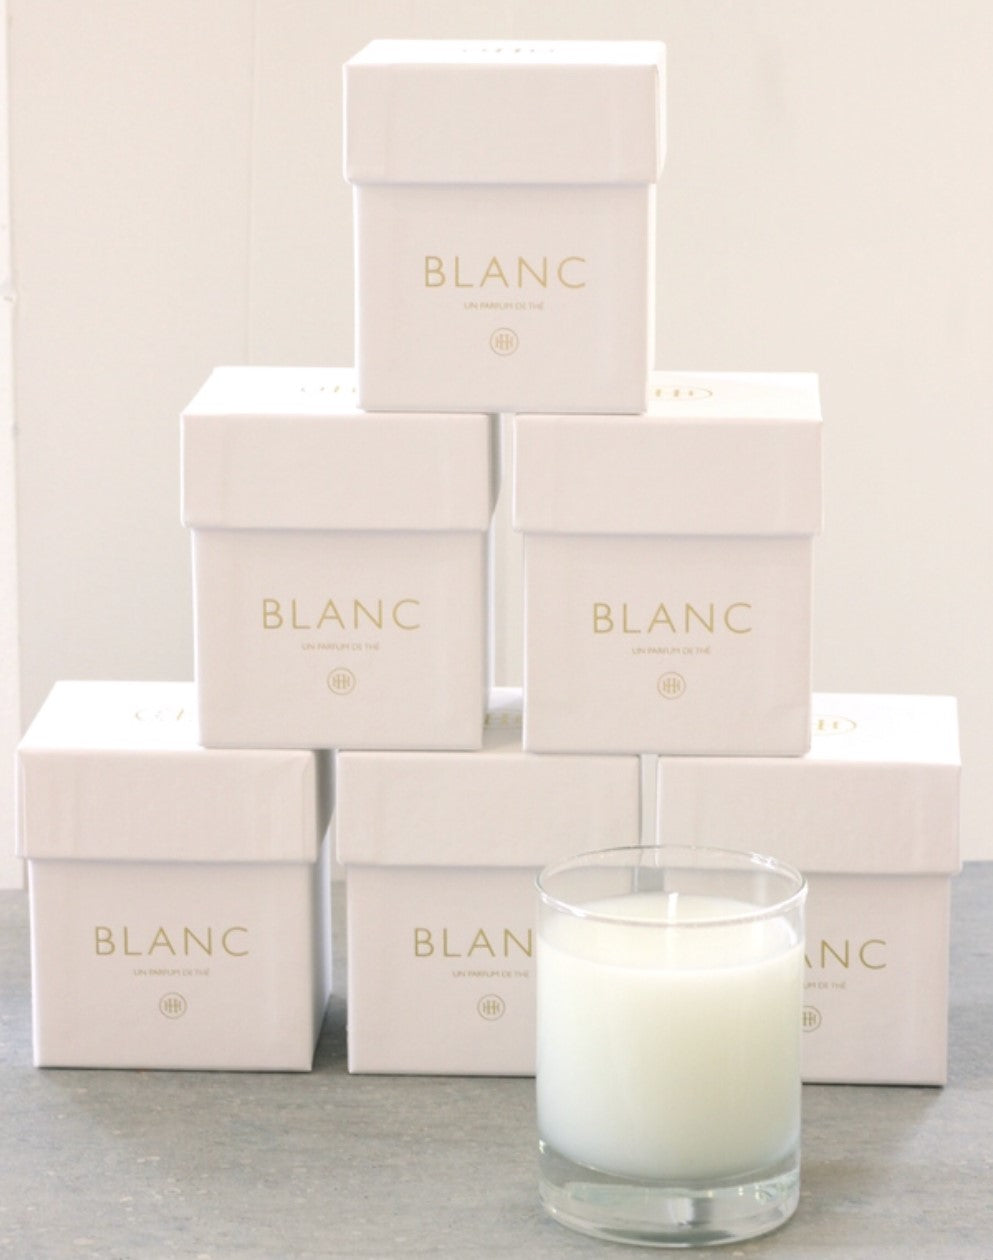 We decided to keep the packaging clean, elegant and simple, just like the scent within